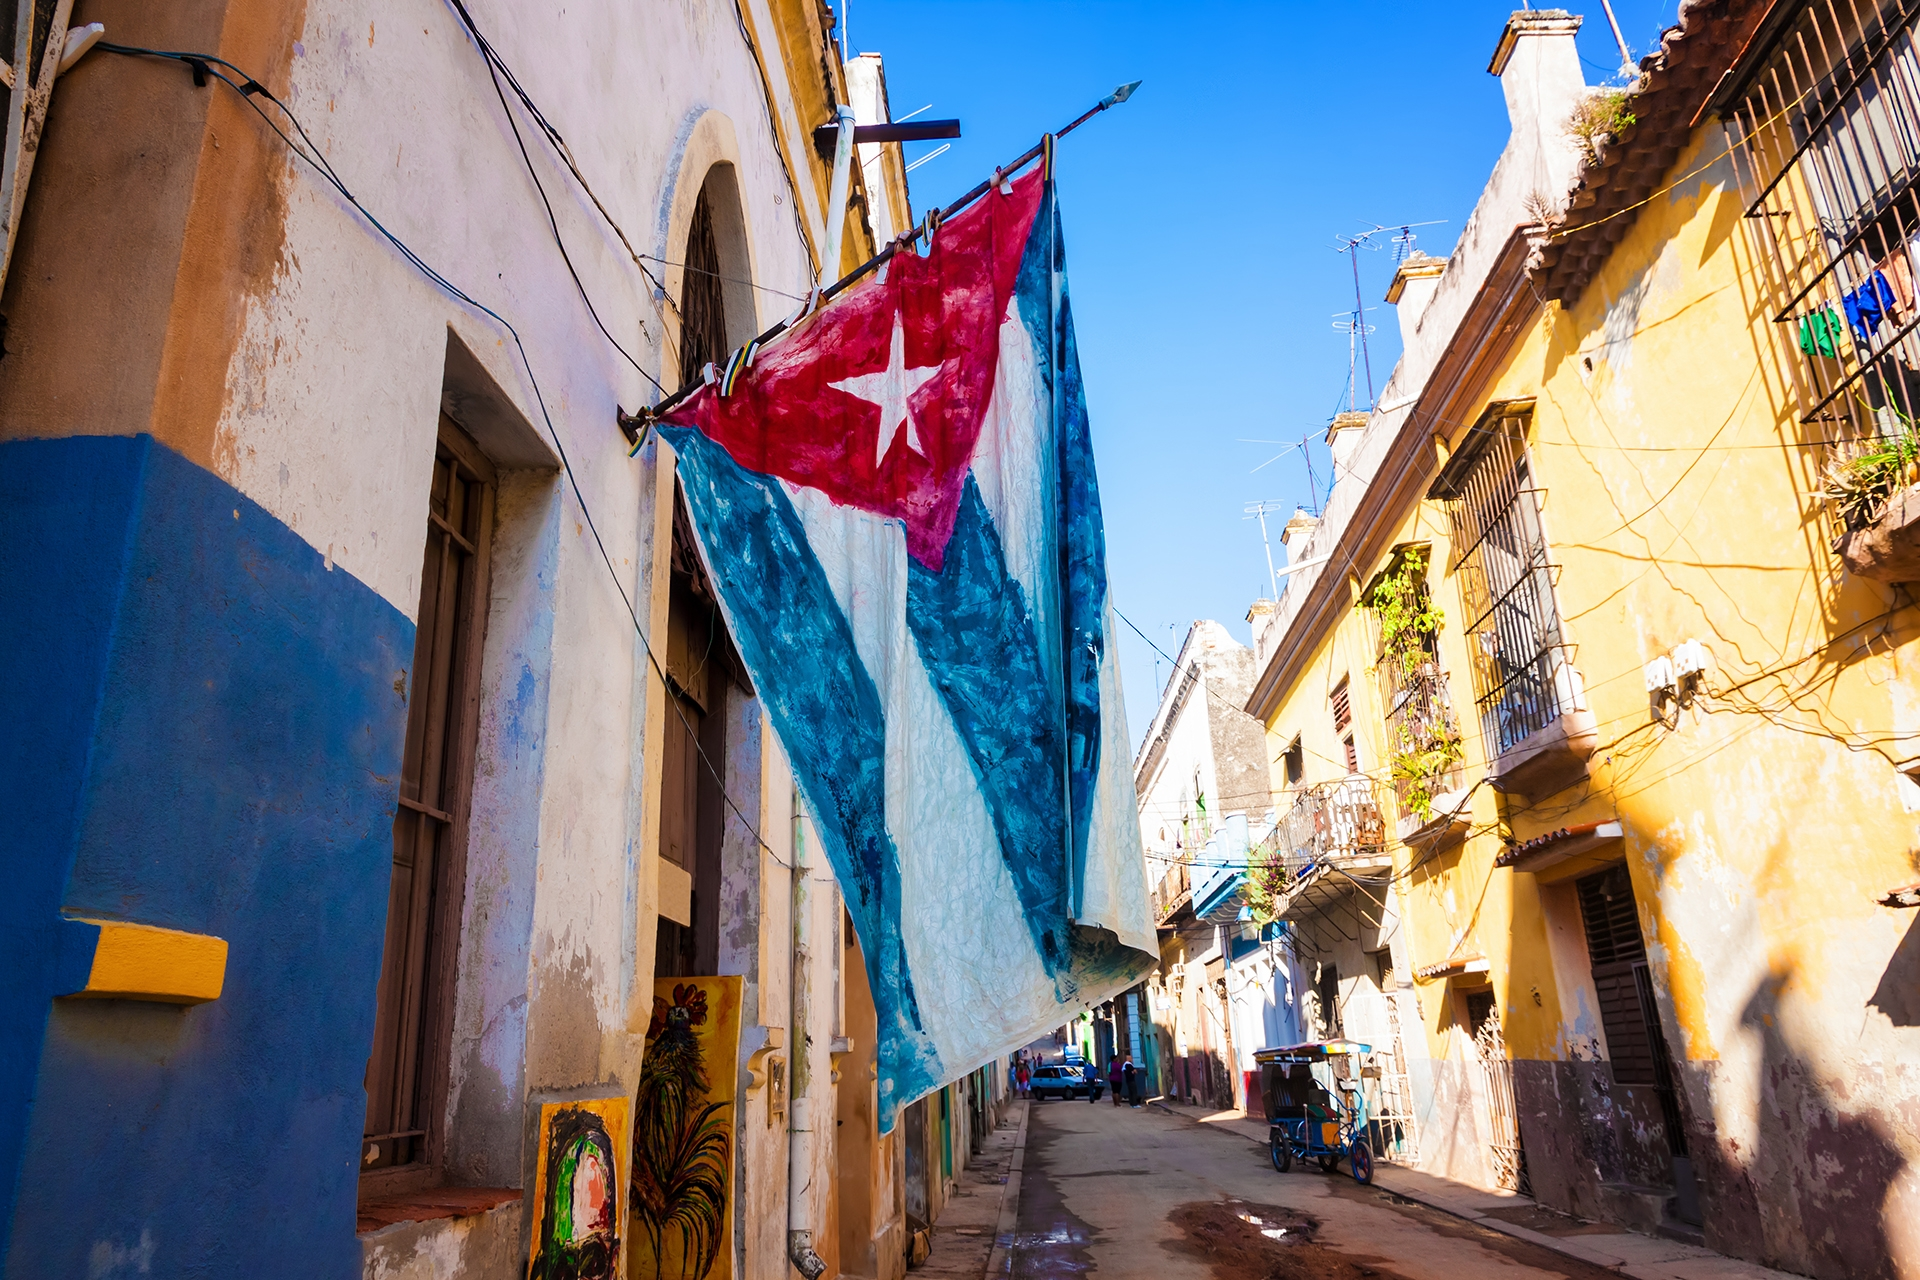 Street sidelined by decaying buildings in Old Havana with a big cuban flag